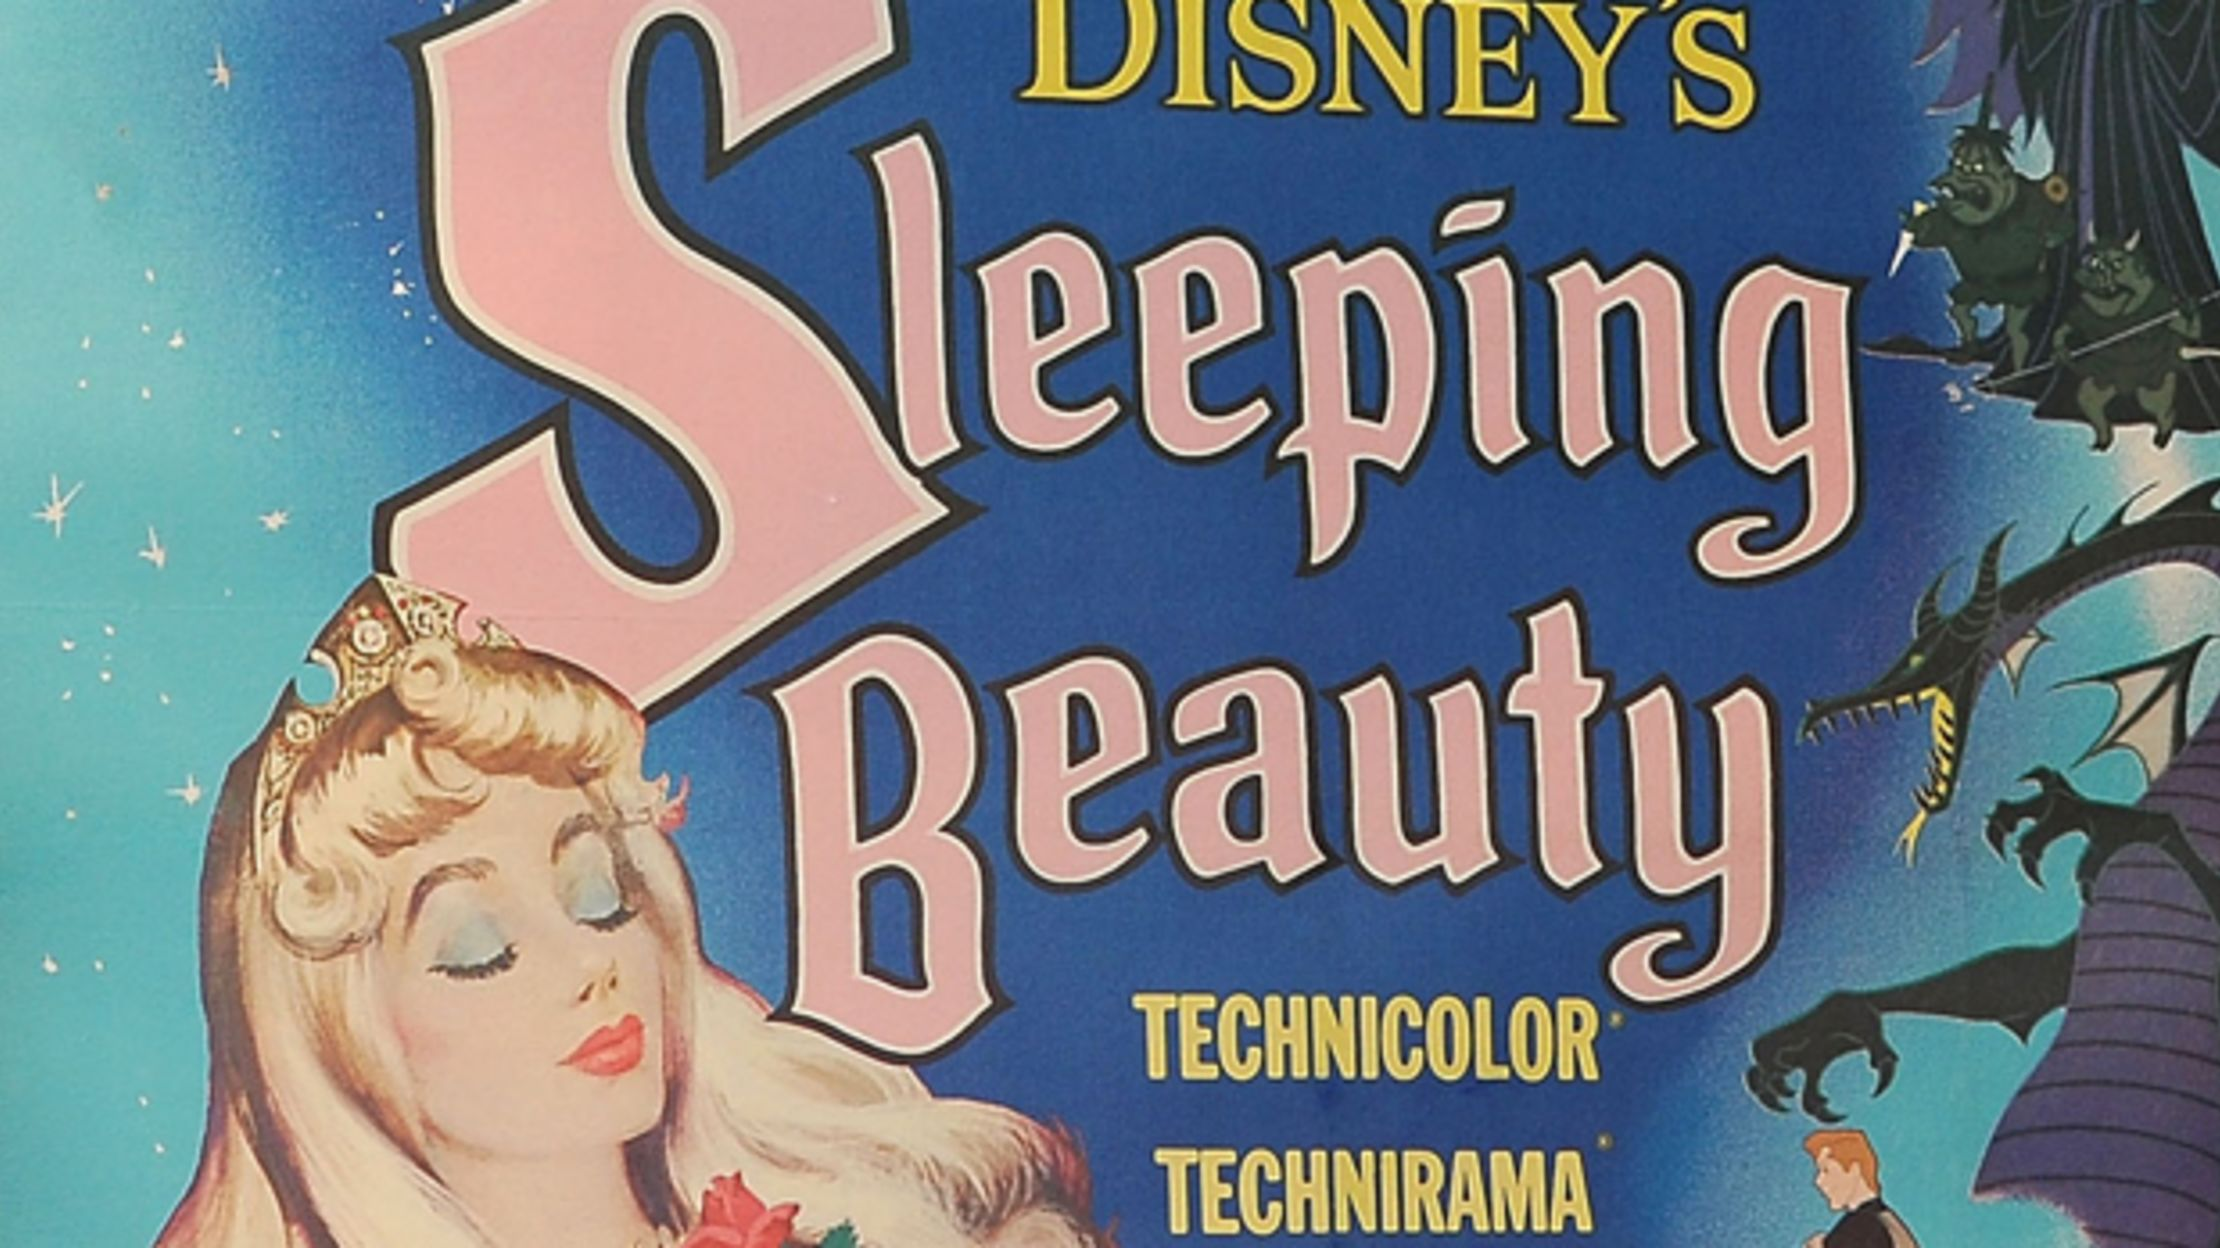 13 Sleeping Beauty Facts That Are Anything But a Snooze